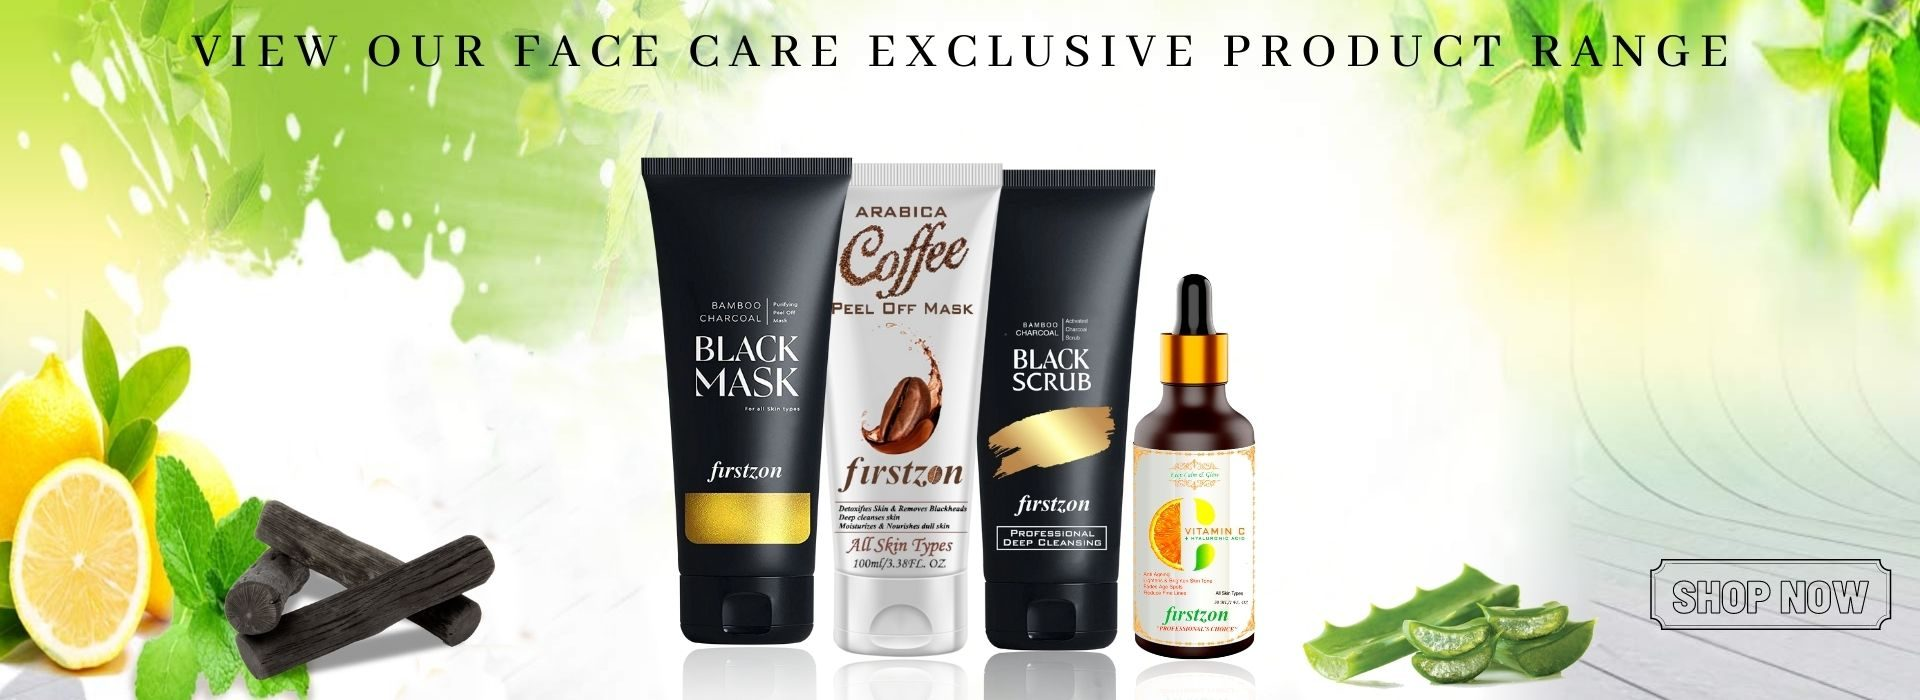 VIEW OUR EXCLUSIVE PRODUCT RANGE (1)